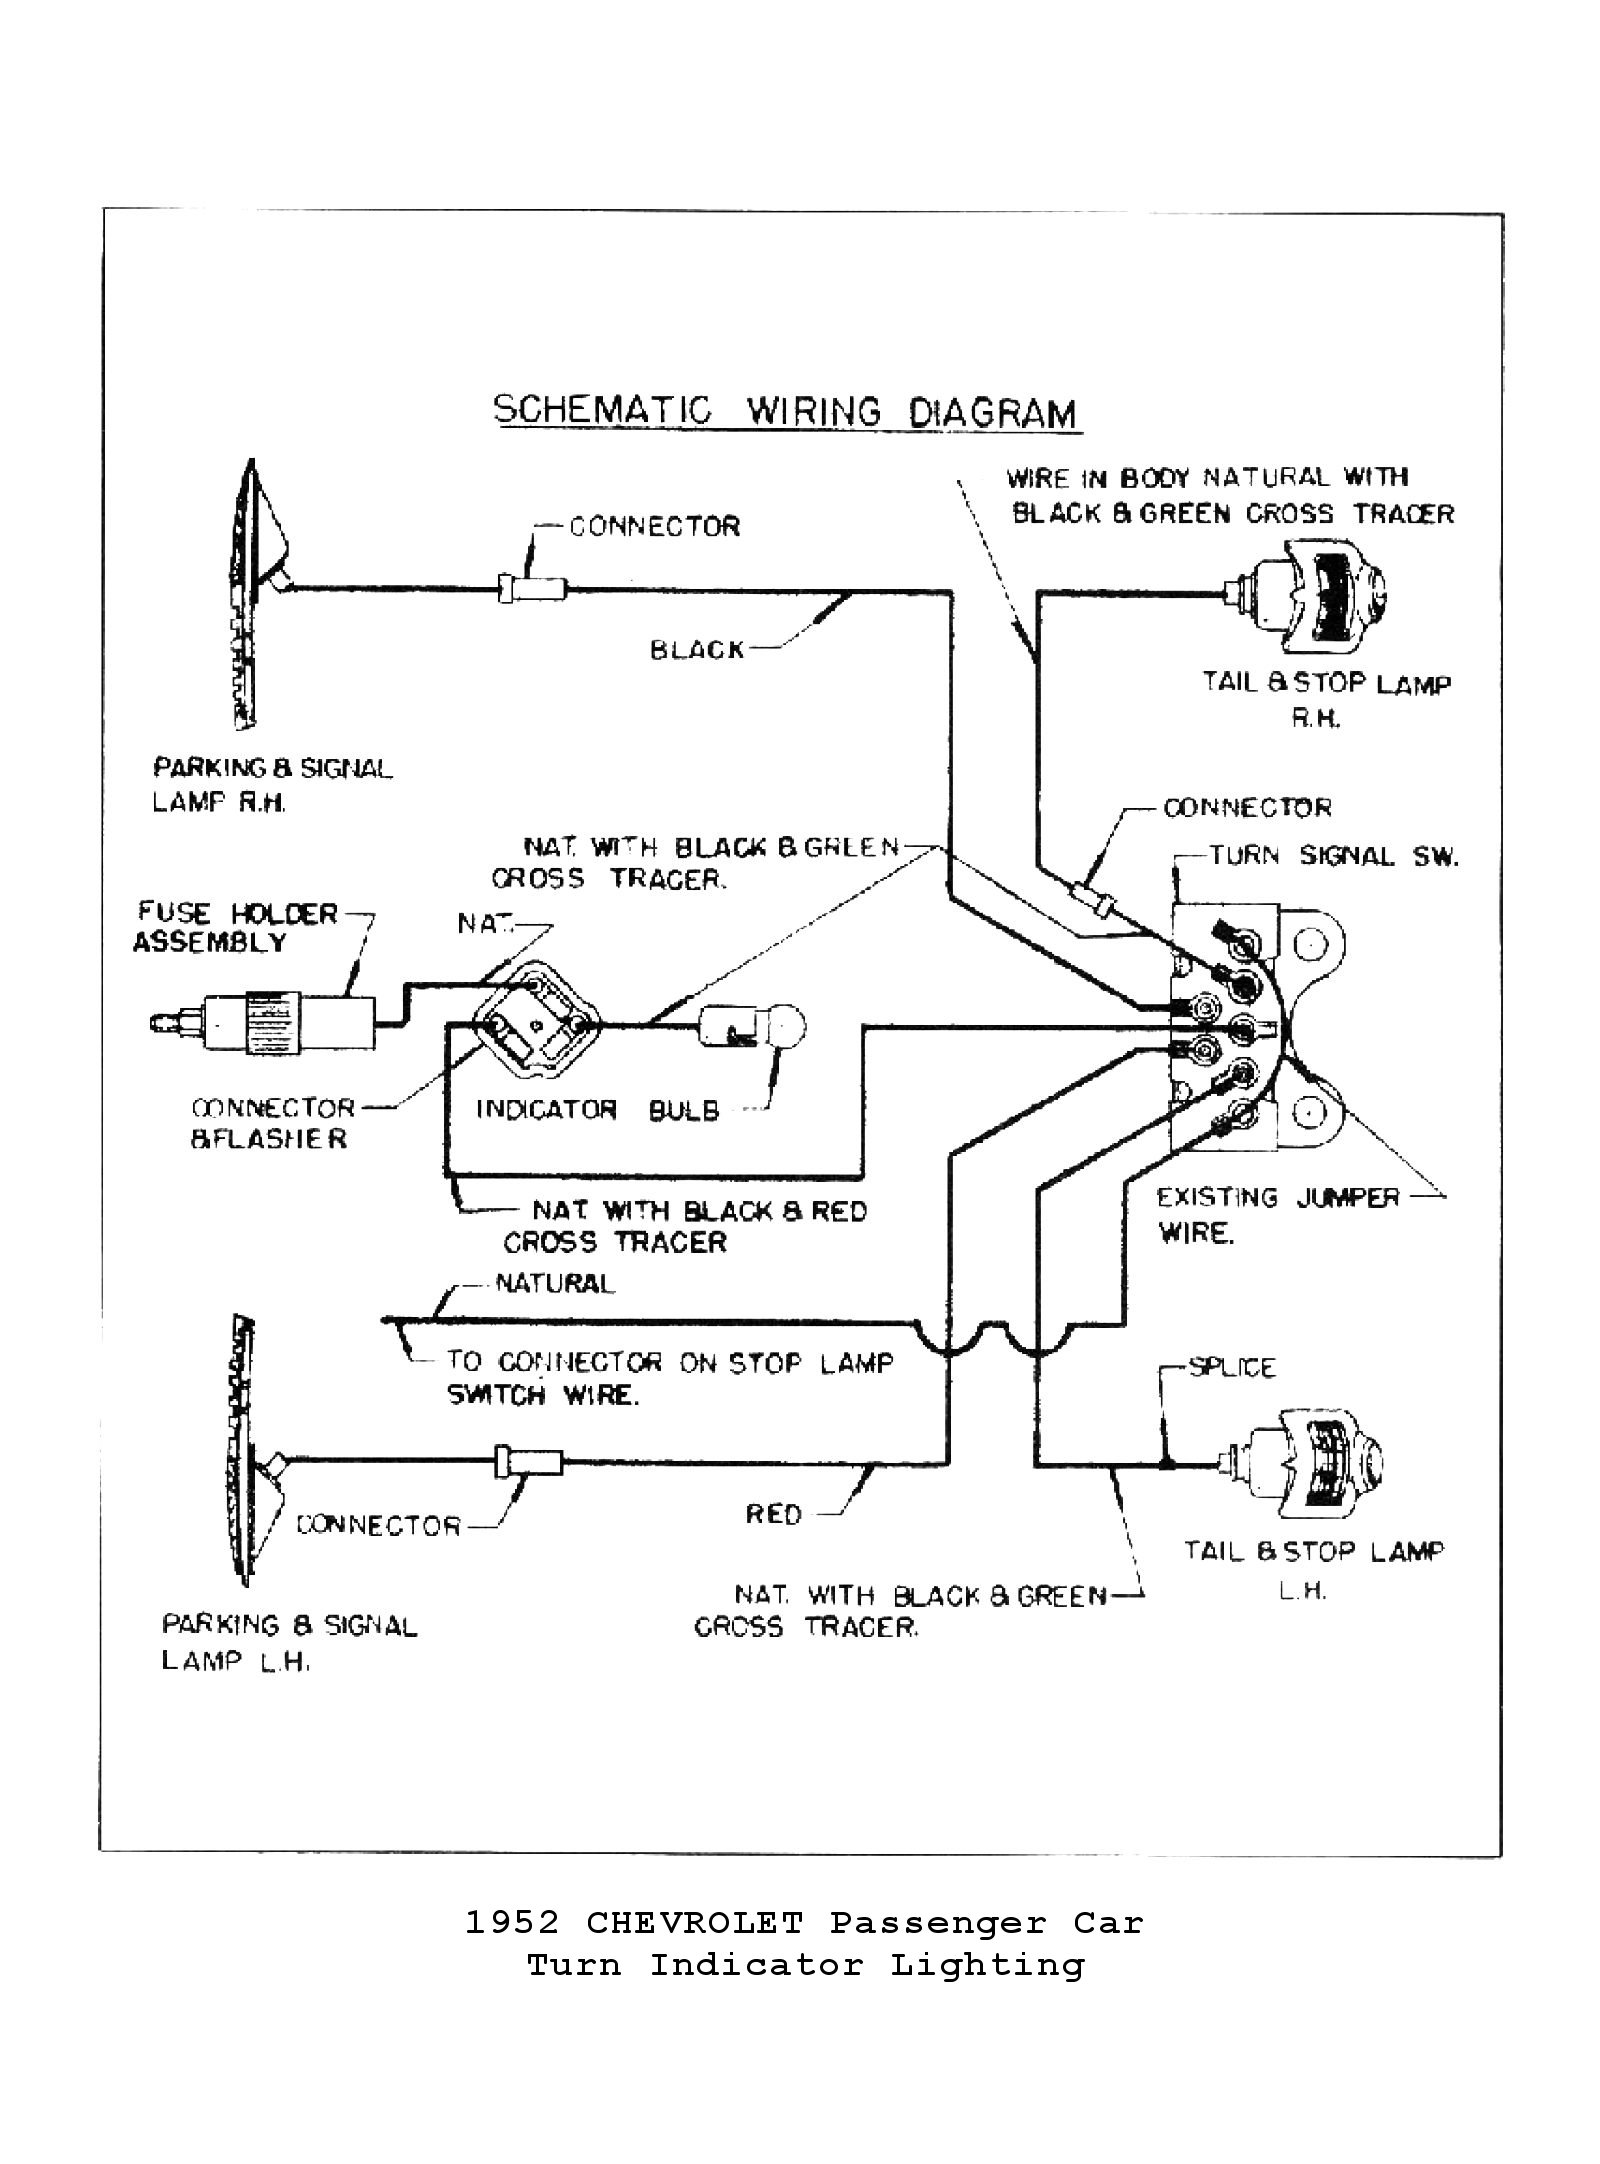 1955 chevy turn signal wiring diagram free download enthusiast rh rasalibre co